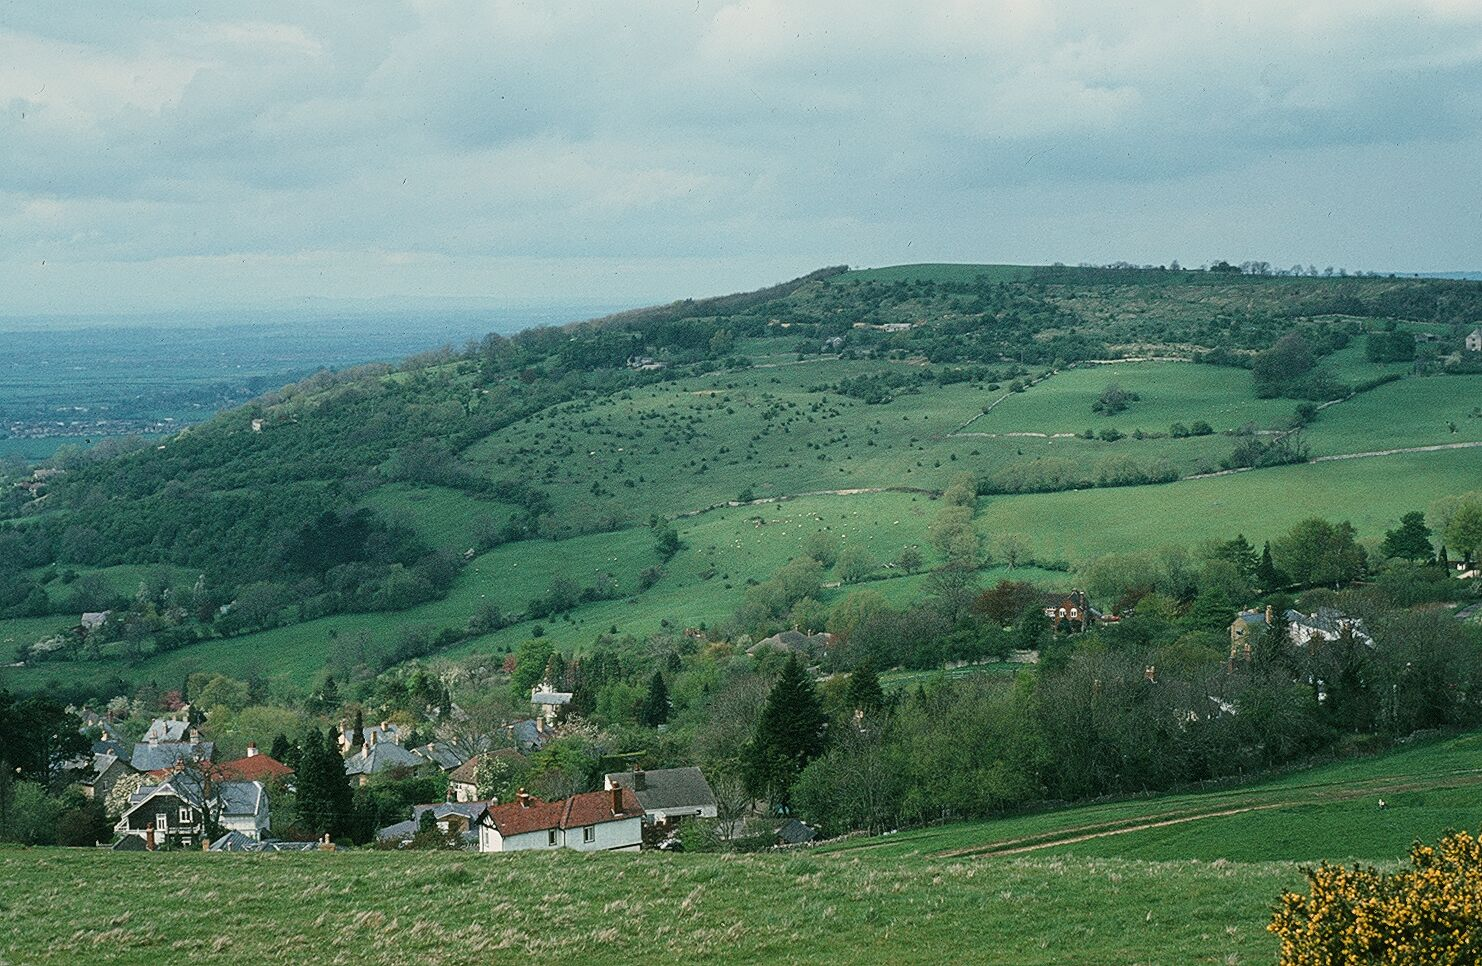 Cotswolds hill and village picture courtesy of Glenluwin (Own work) [CC BY-SA 3.0 (http://creativecommons.org/licenses/by-sa/3.0)], via Wikimedia Commons